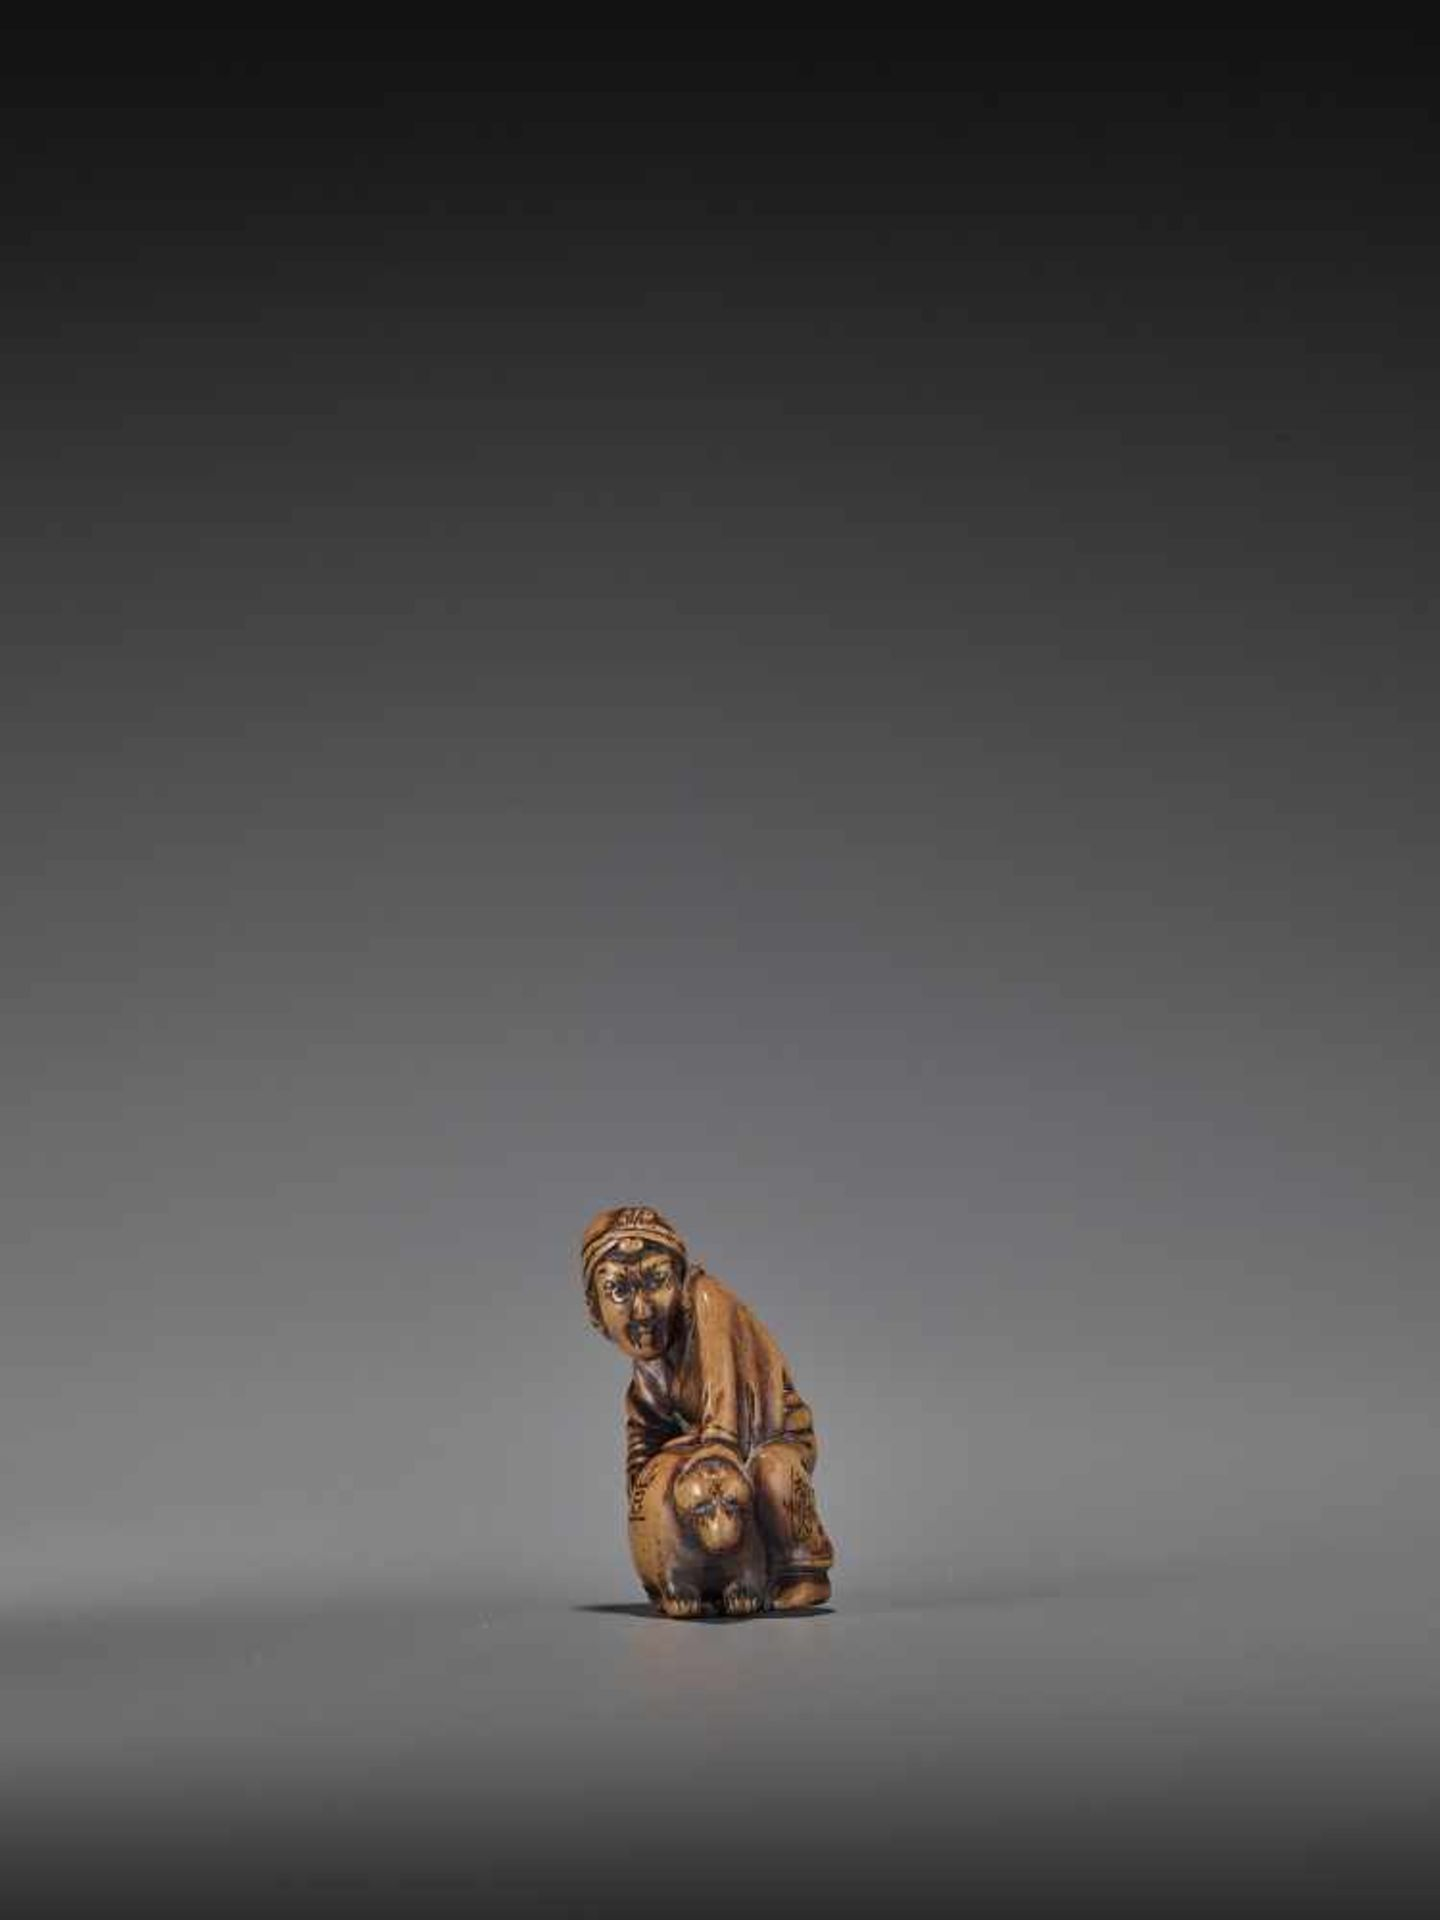 HIDEHISA: A RARE WOOD NETSUKE OF A THIEF STEALING THE MAGIC TANUKI KETTLE By Hidehisa, signed - Image 4 of 12